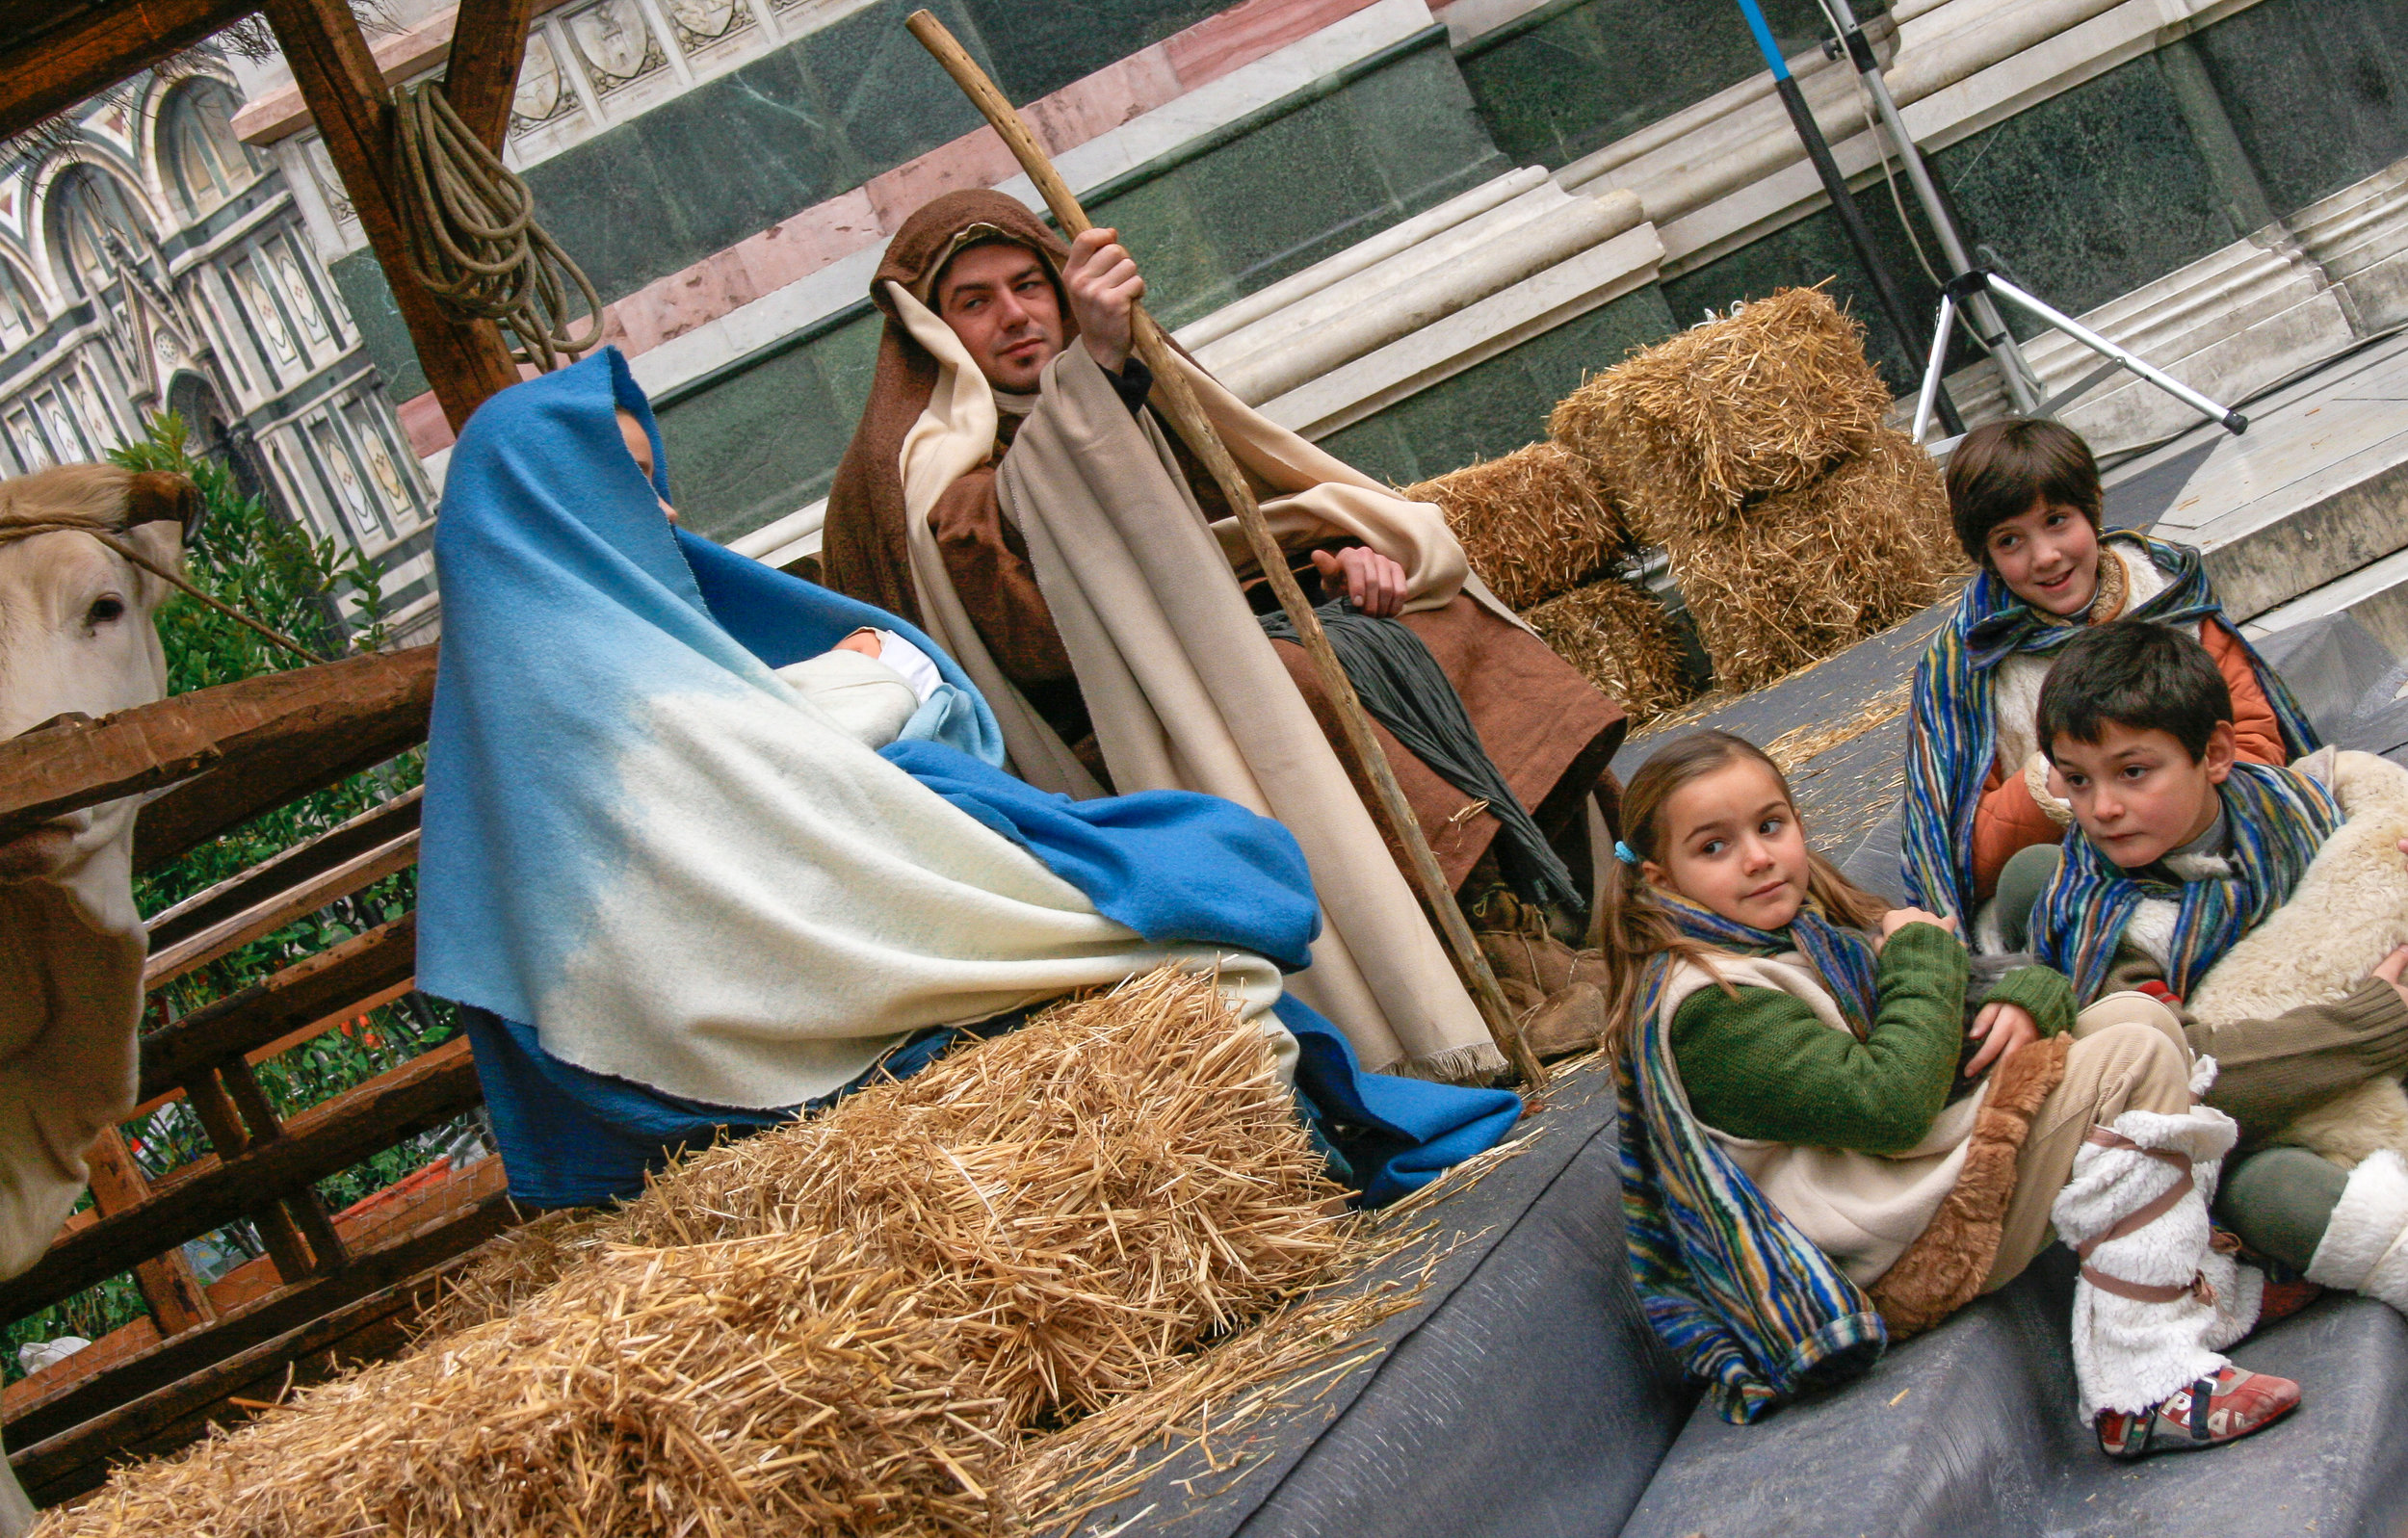 The live Nativity at the Duomo in Florence